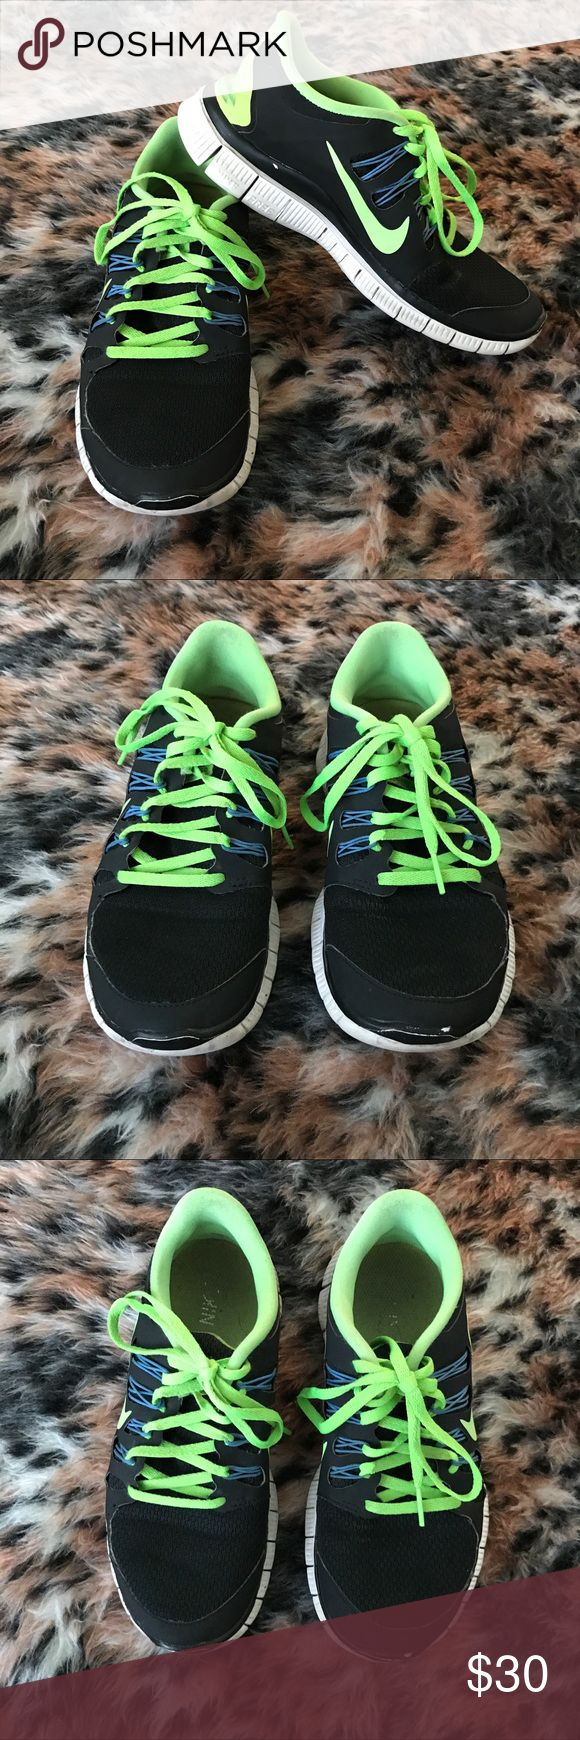 "Nike Free 5.0 black and lime green athletic shoes A gently used black and lime green pair of athletic shoes by Nike in a size 7.5 and in the style ""Nike Free Run 5.0"".  ✨ Ask me about free shipping! 💕 Always ships within 2 business day 🚫 I do not trade"